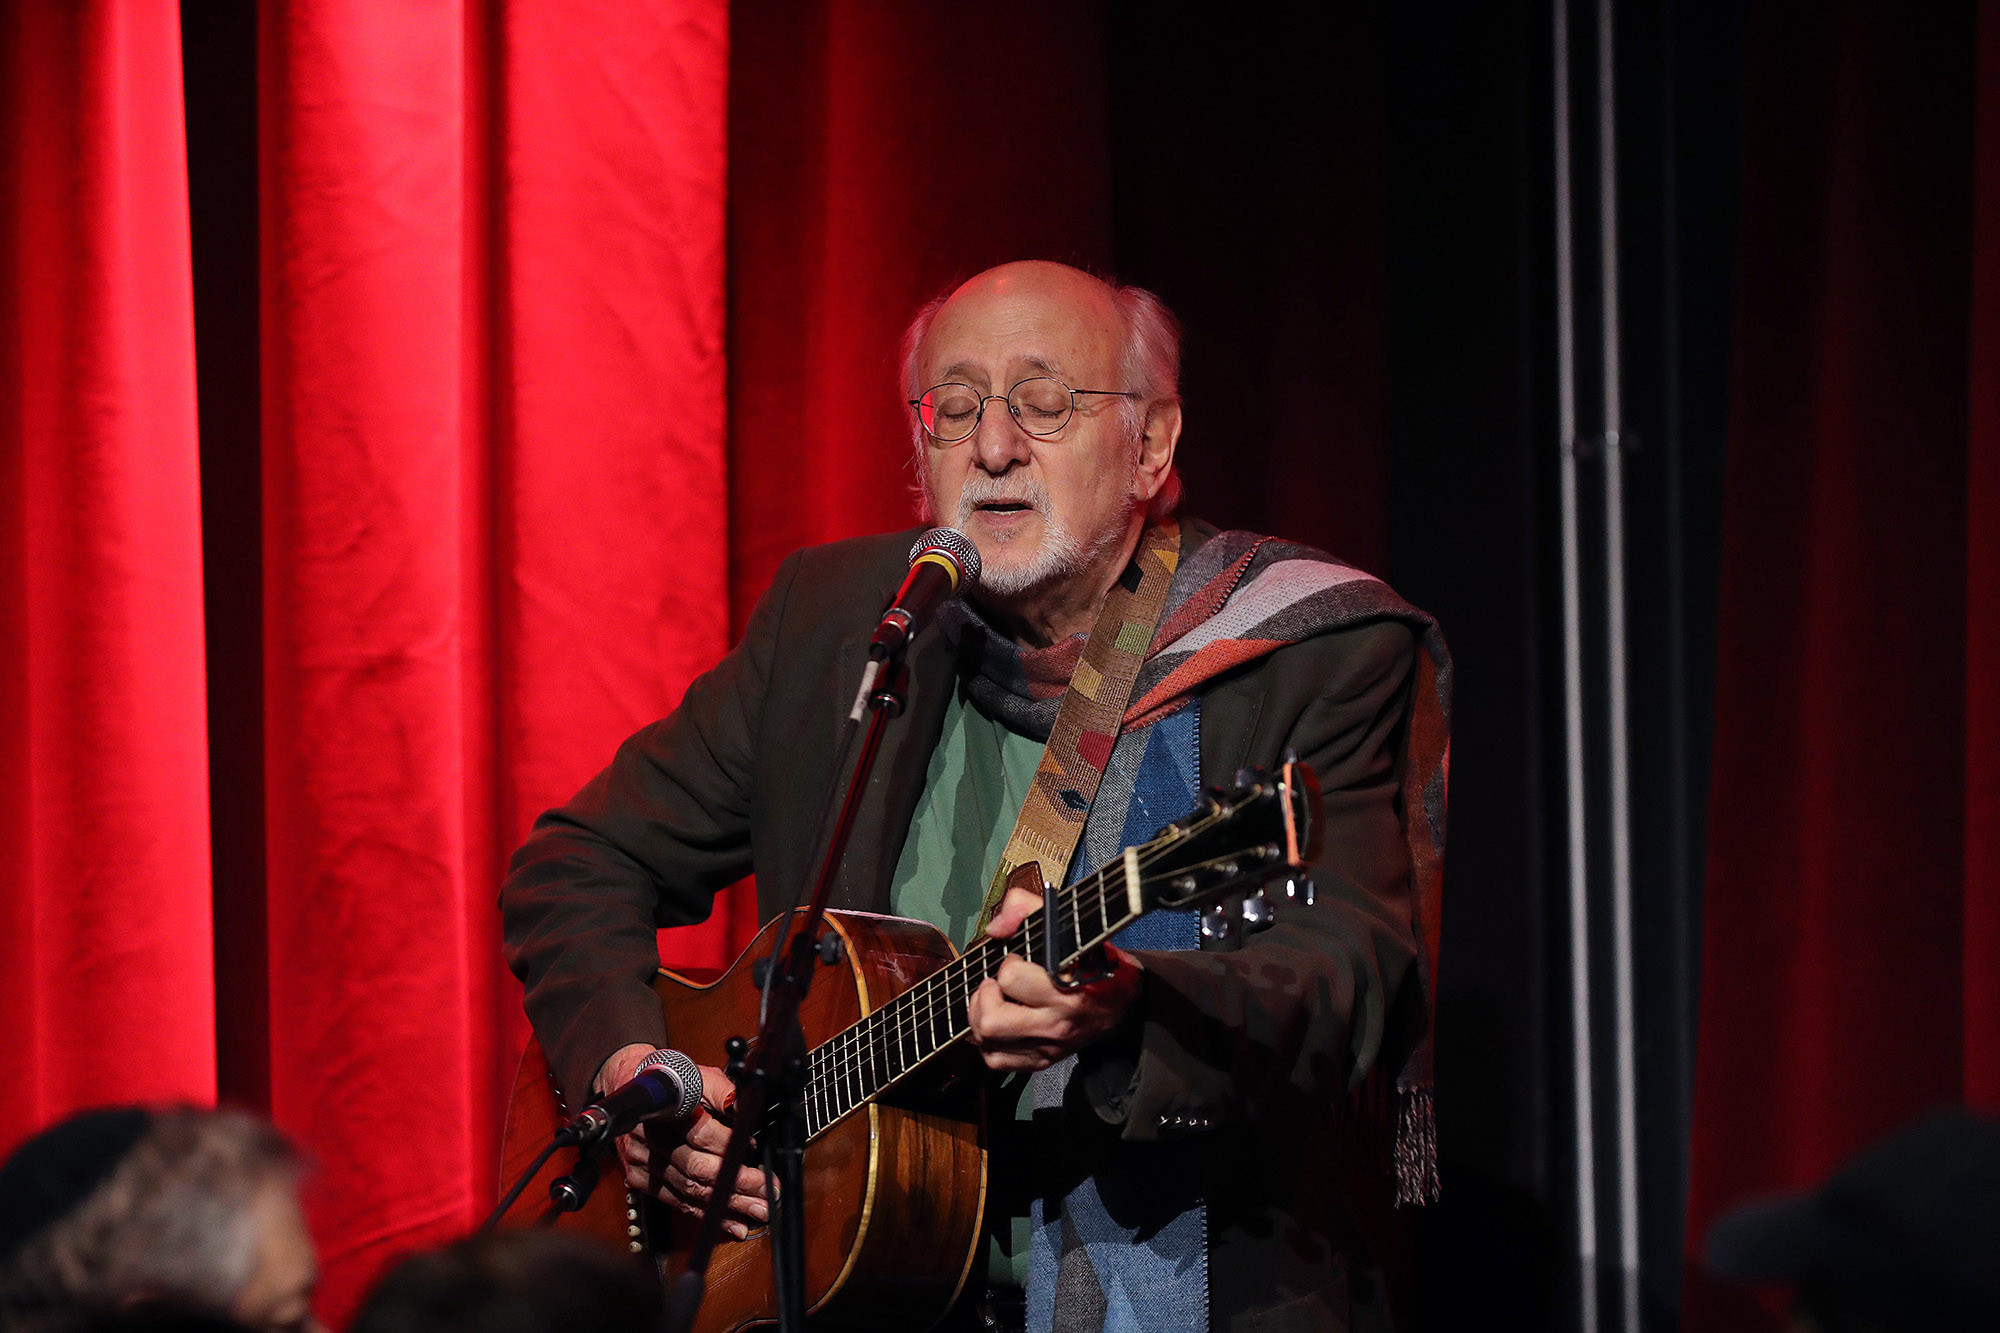 Peter Yarrow accused of raping underage girl in NYC in